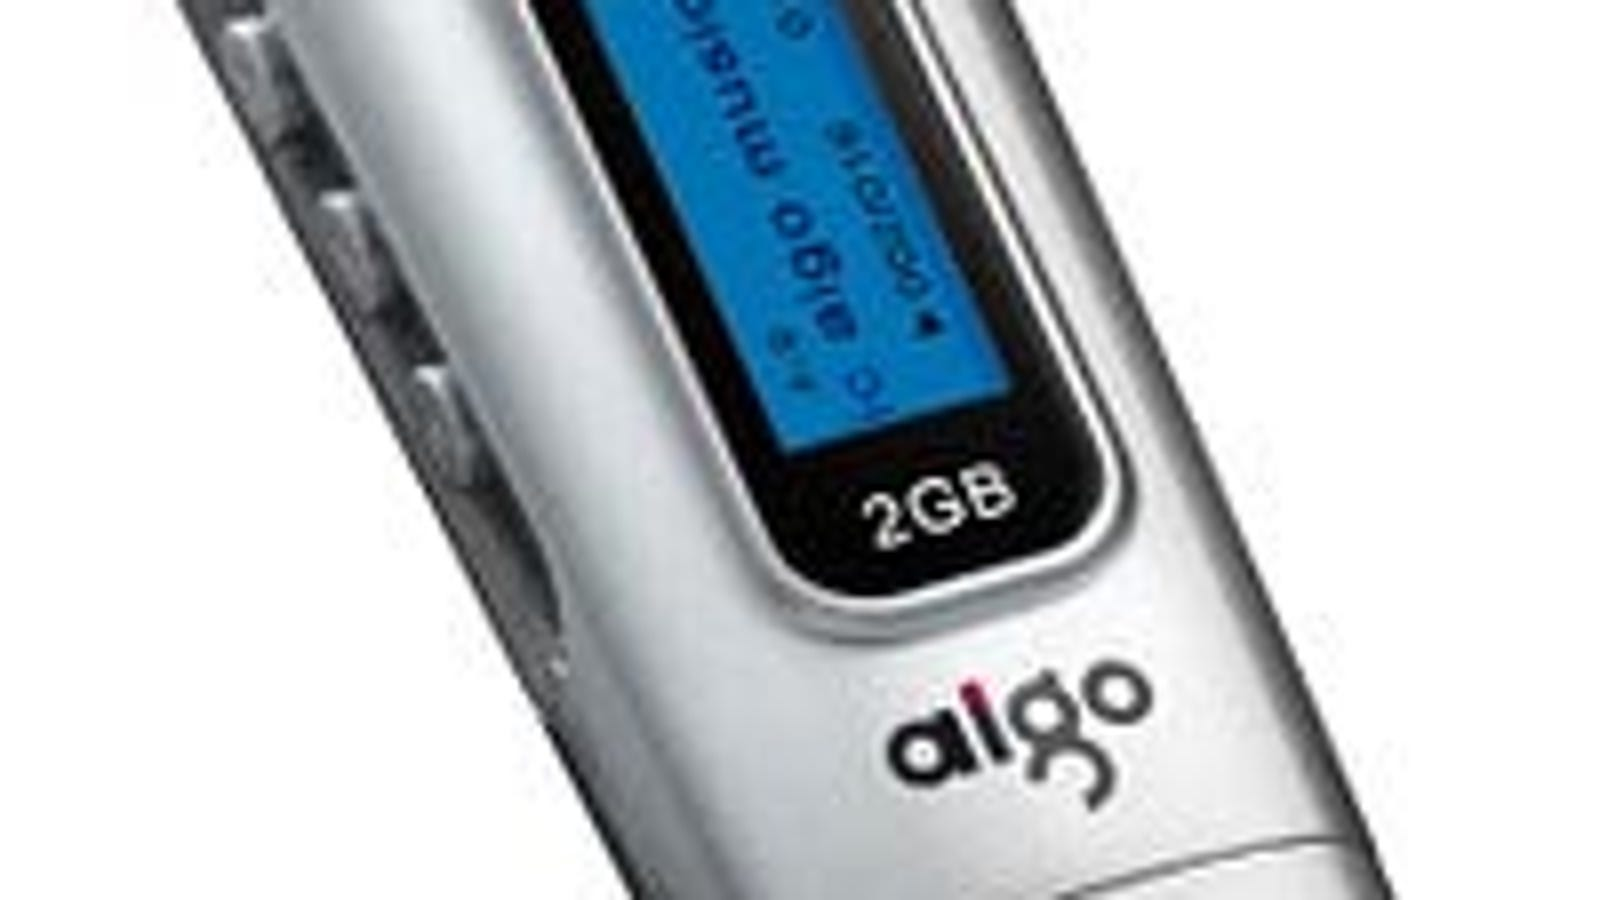 AIGO A215 WINDOWS 7 DRIVER DOWNLOAD